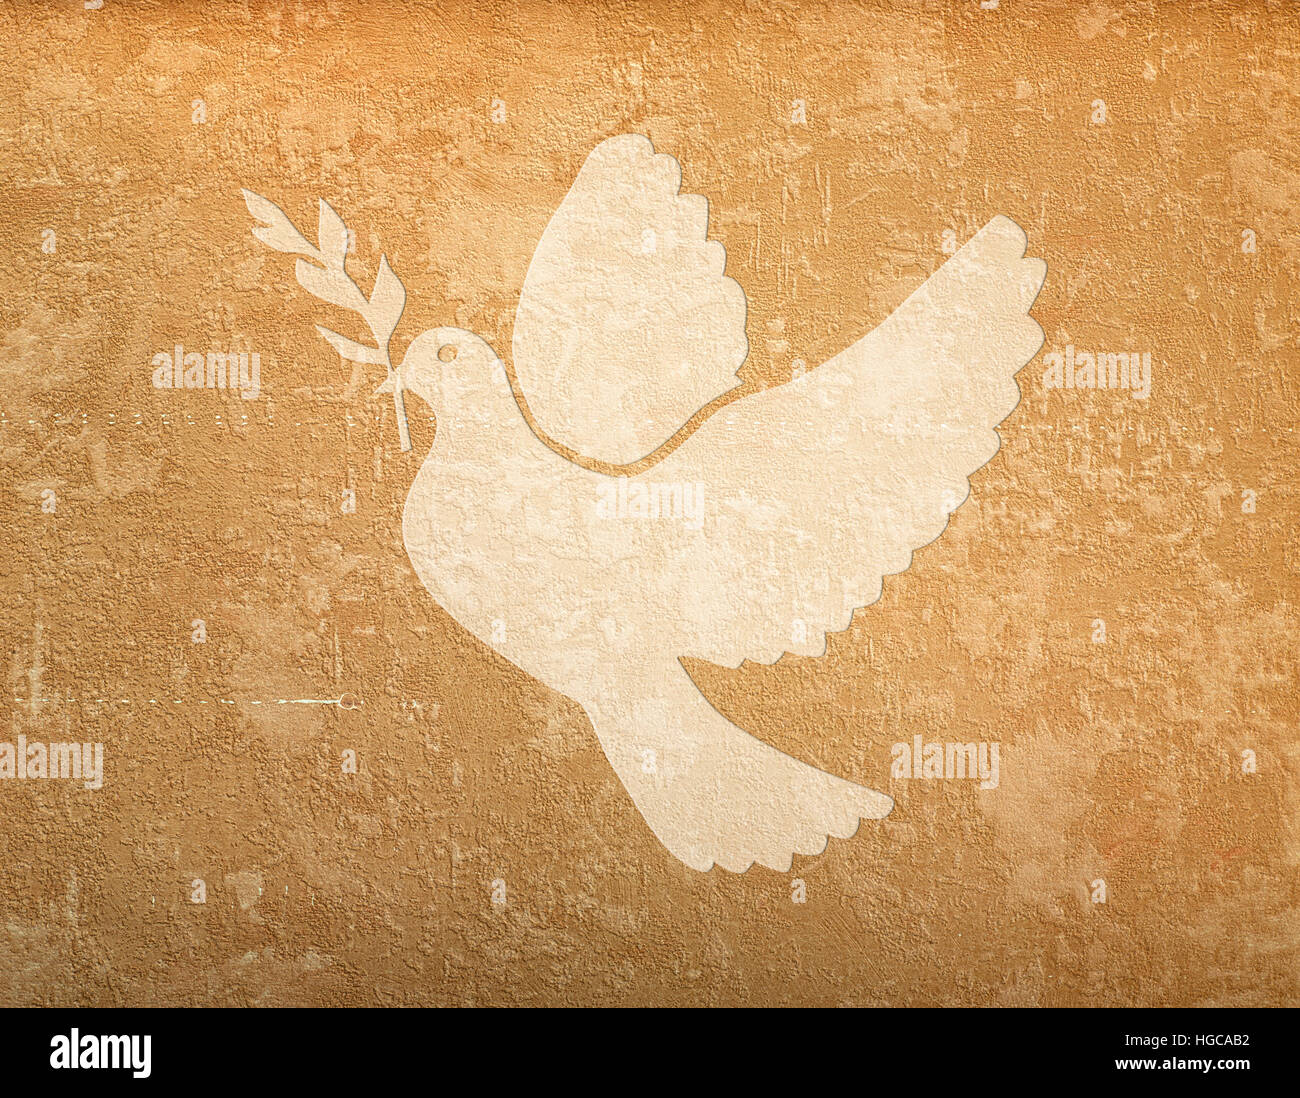 grunge background with space for text and dove shape - Stock Image